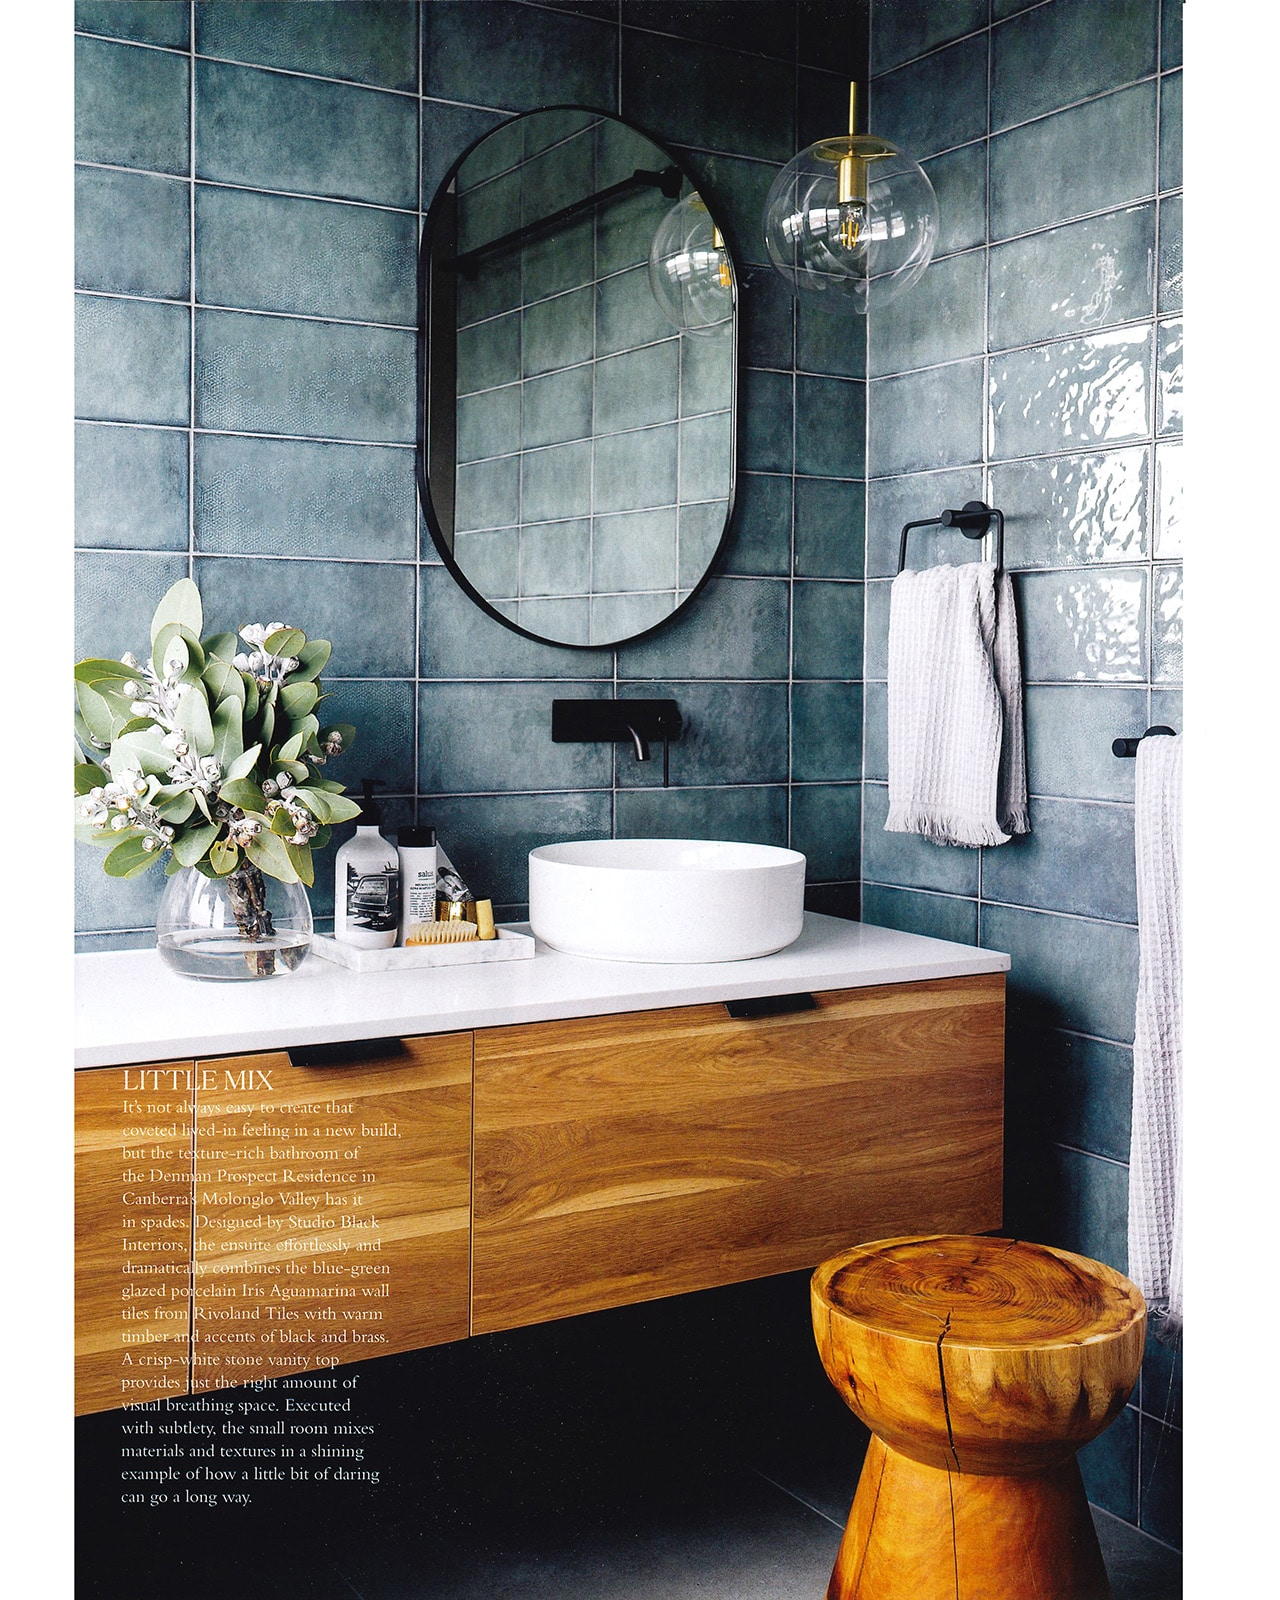 Studio Black Interiors featured in Inside Out Magazine.